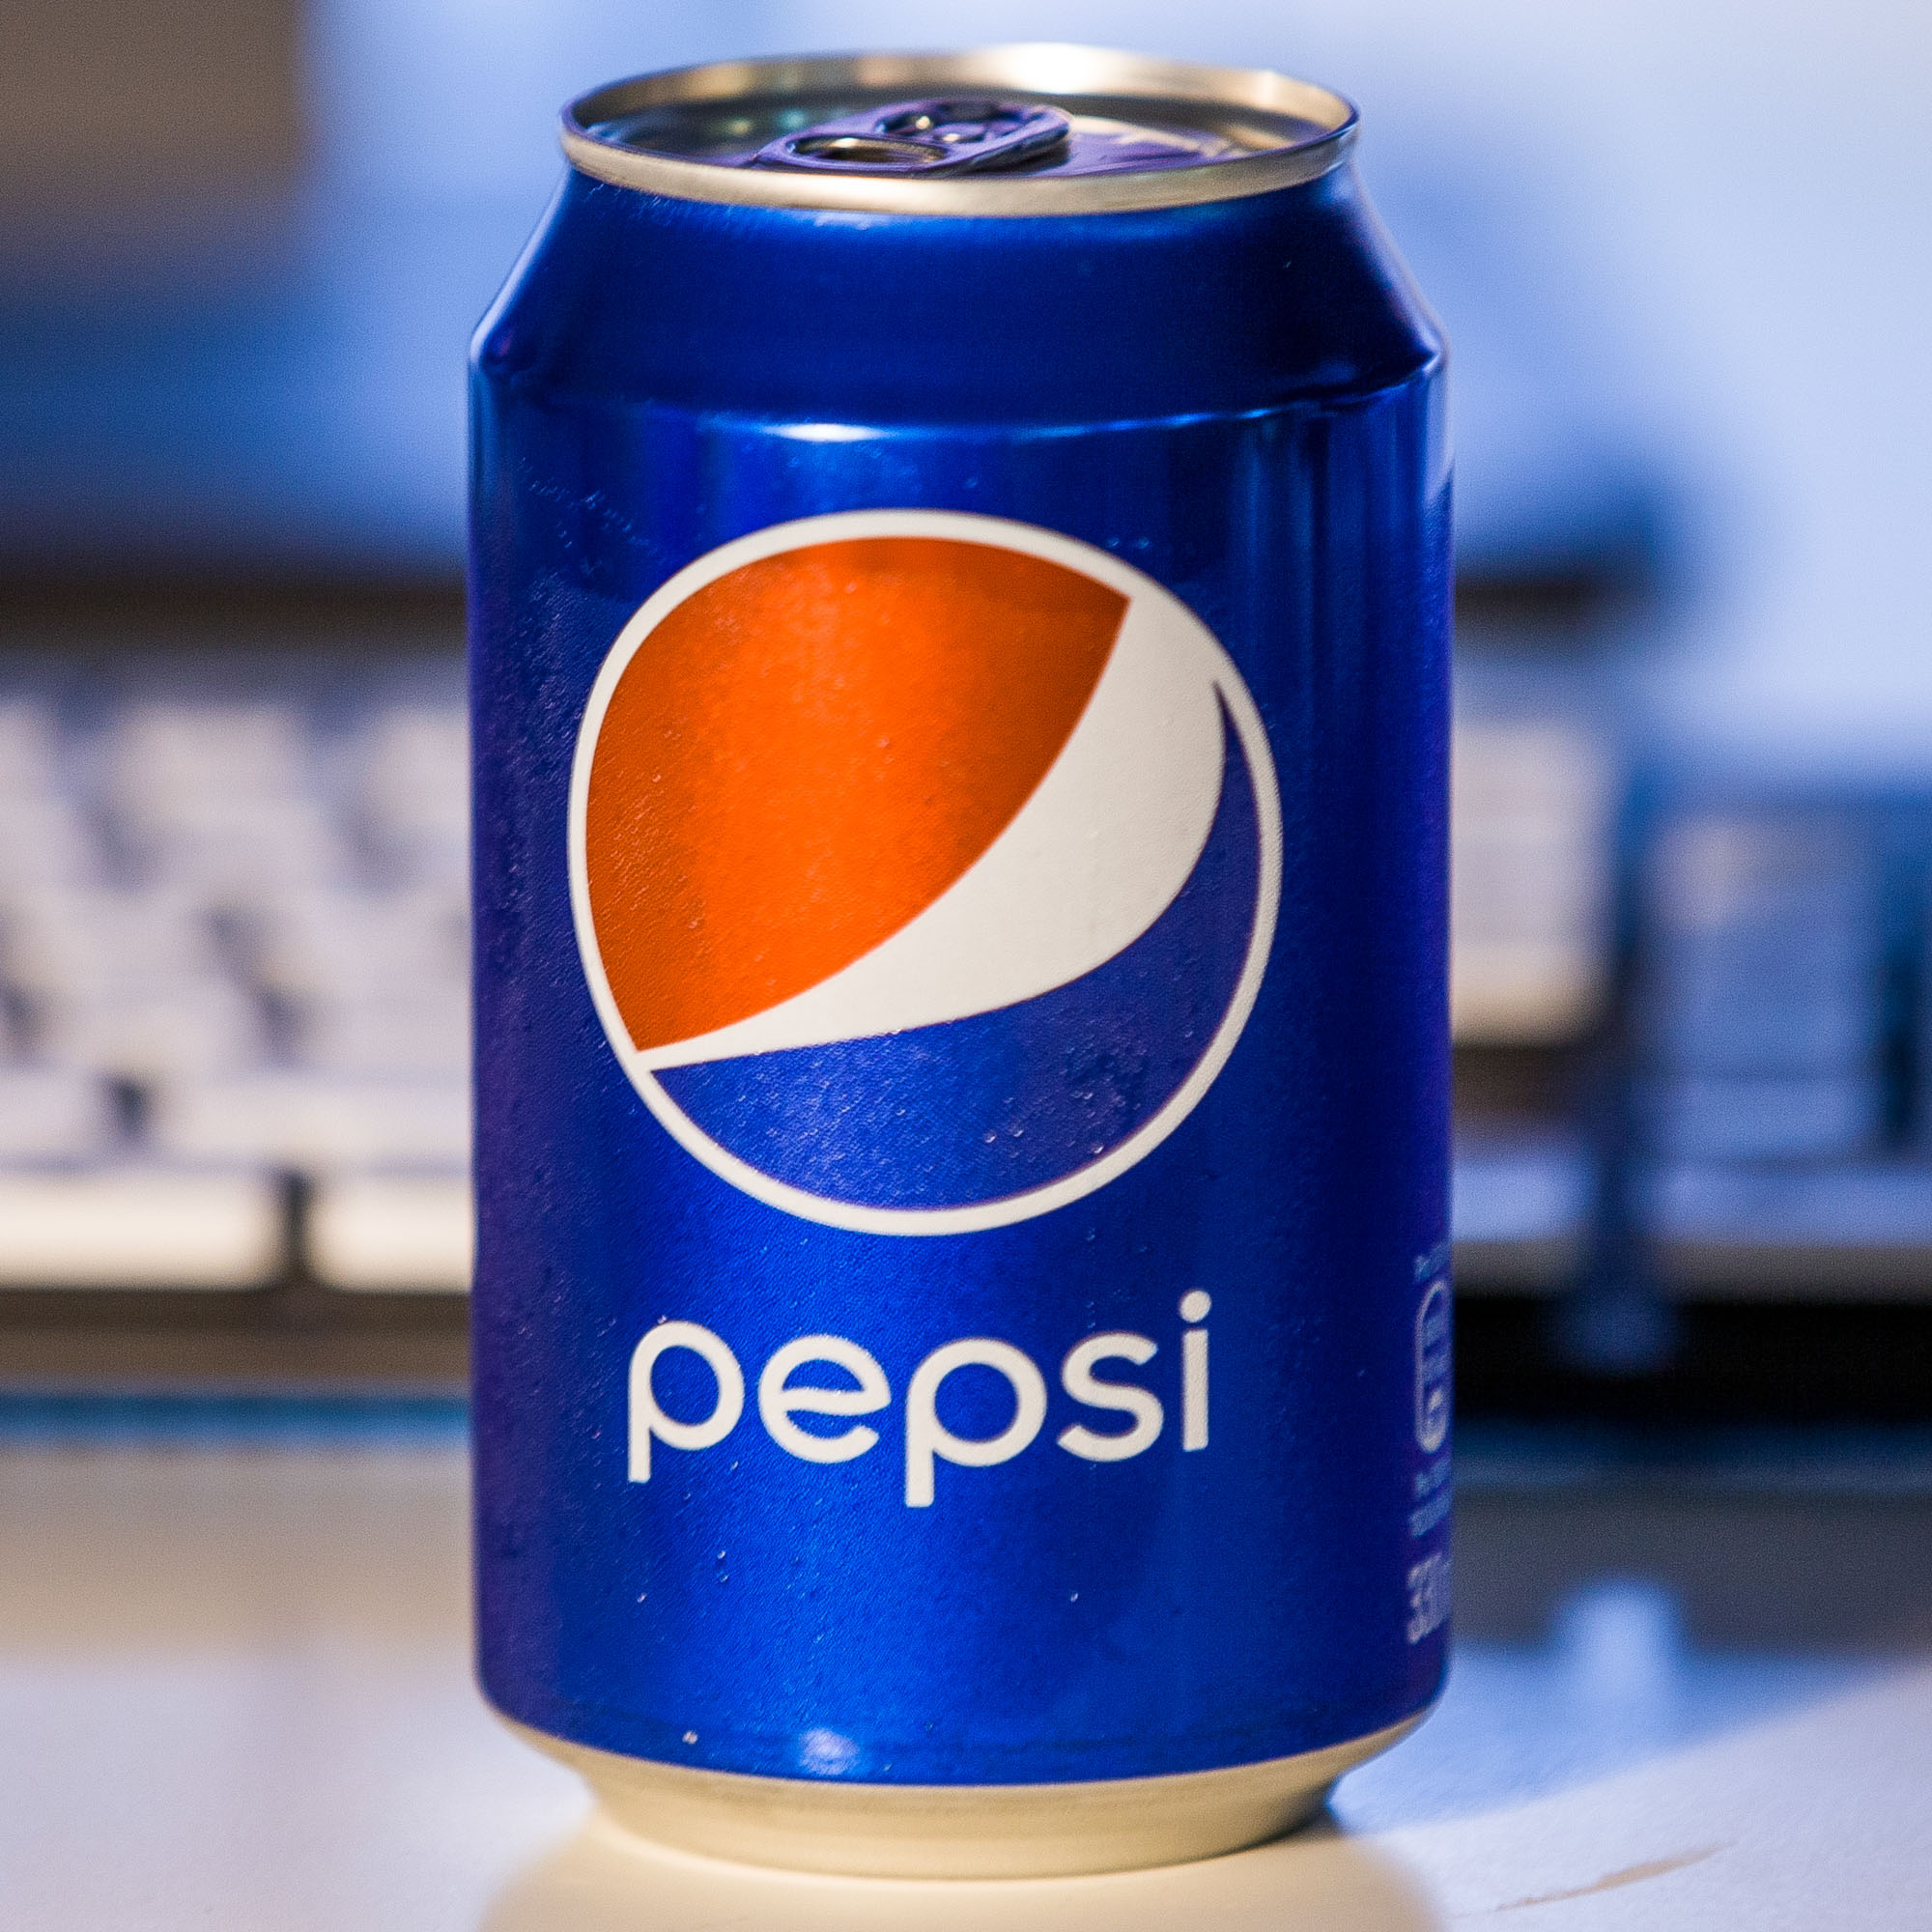 pepsi-photo-by-alexander-grosse-strangmann